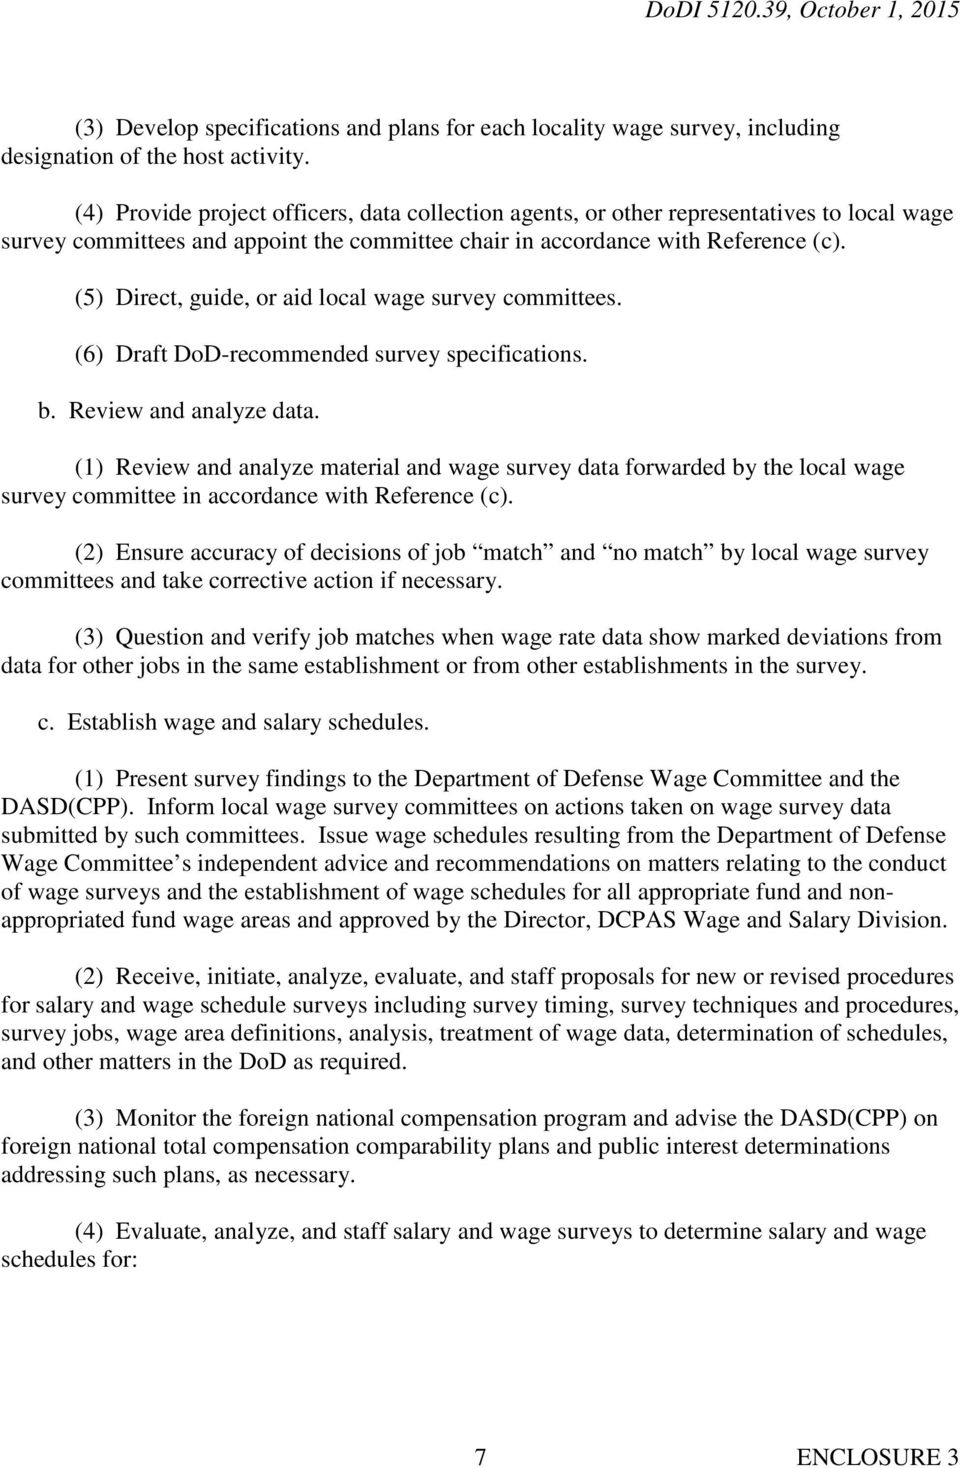 (5) Direct, guide, or aid local wage survey committees. (6) Draft DoD-recommended survey specifications. b. Review and analyze data.